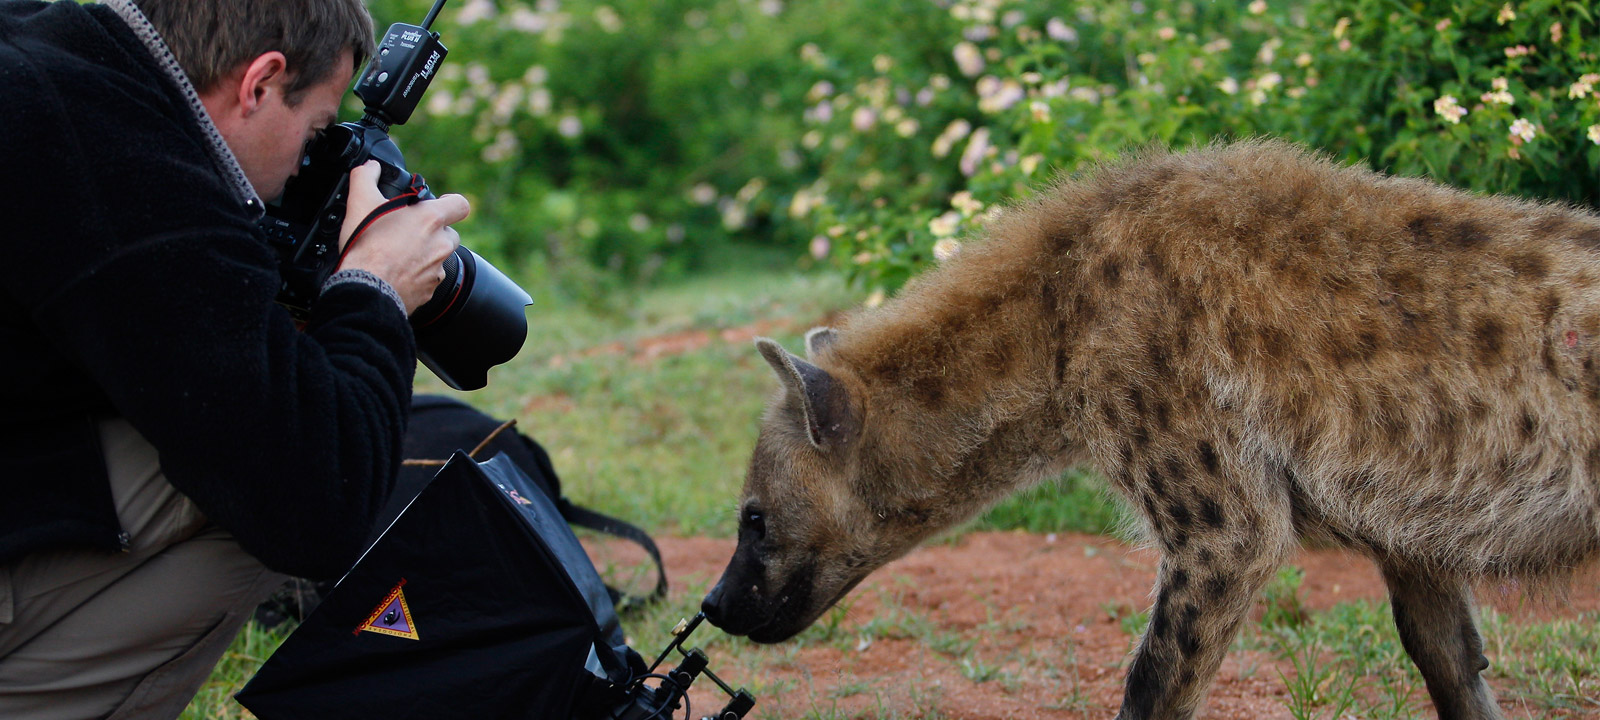 Student photographs hyena